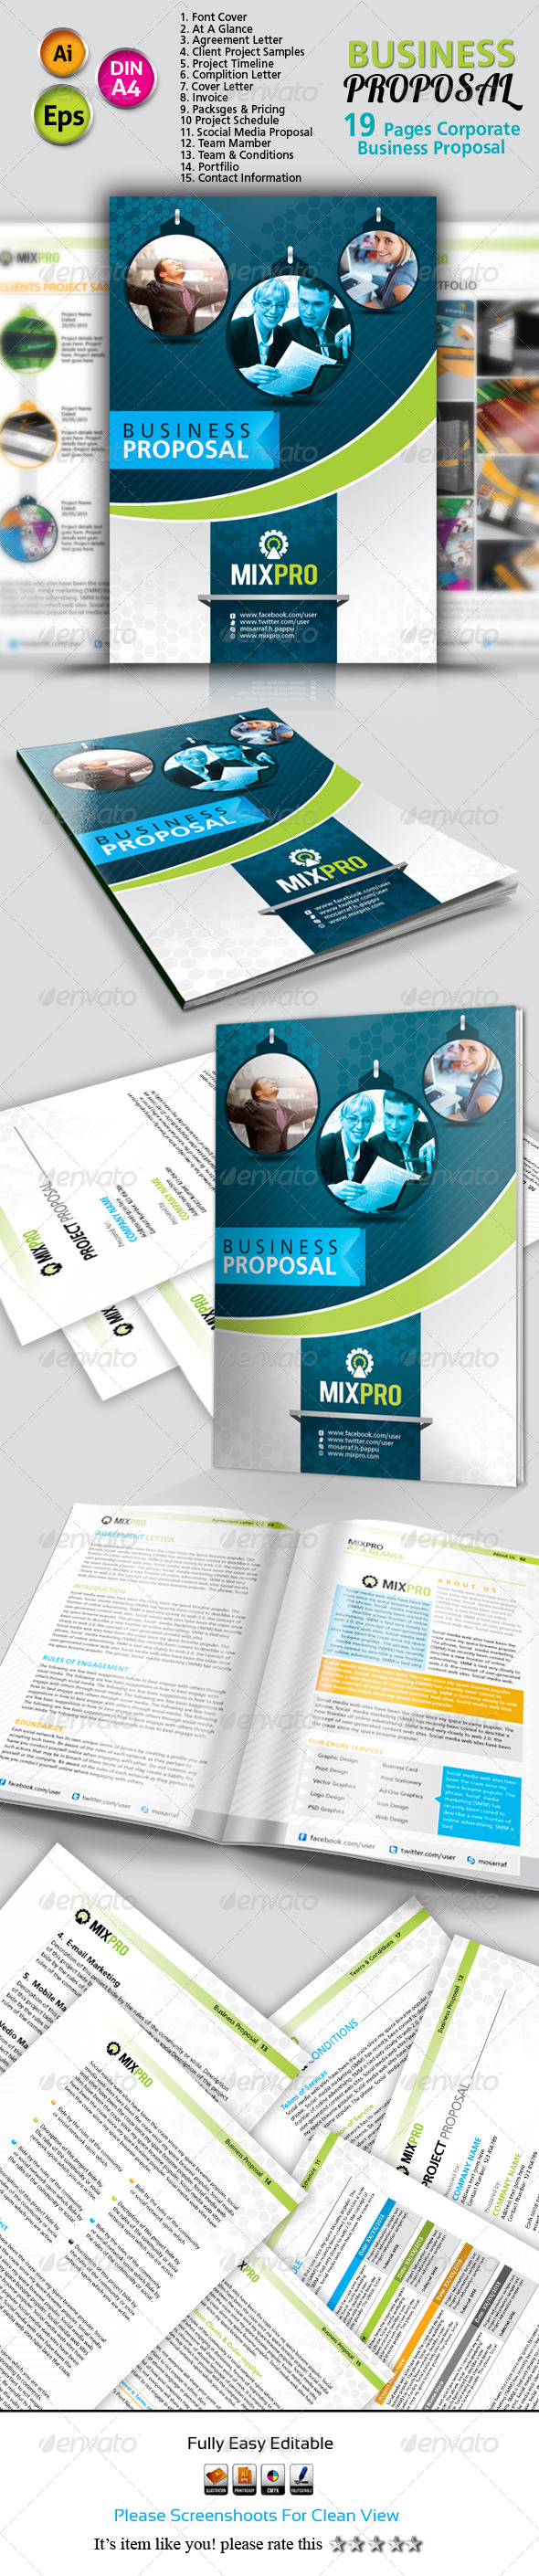 GraphicRiver Mixpro Business Proposal 5244965